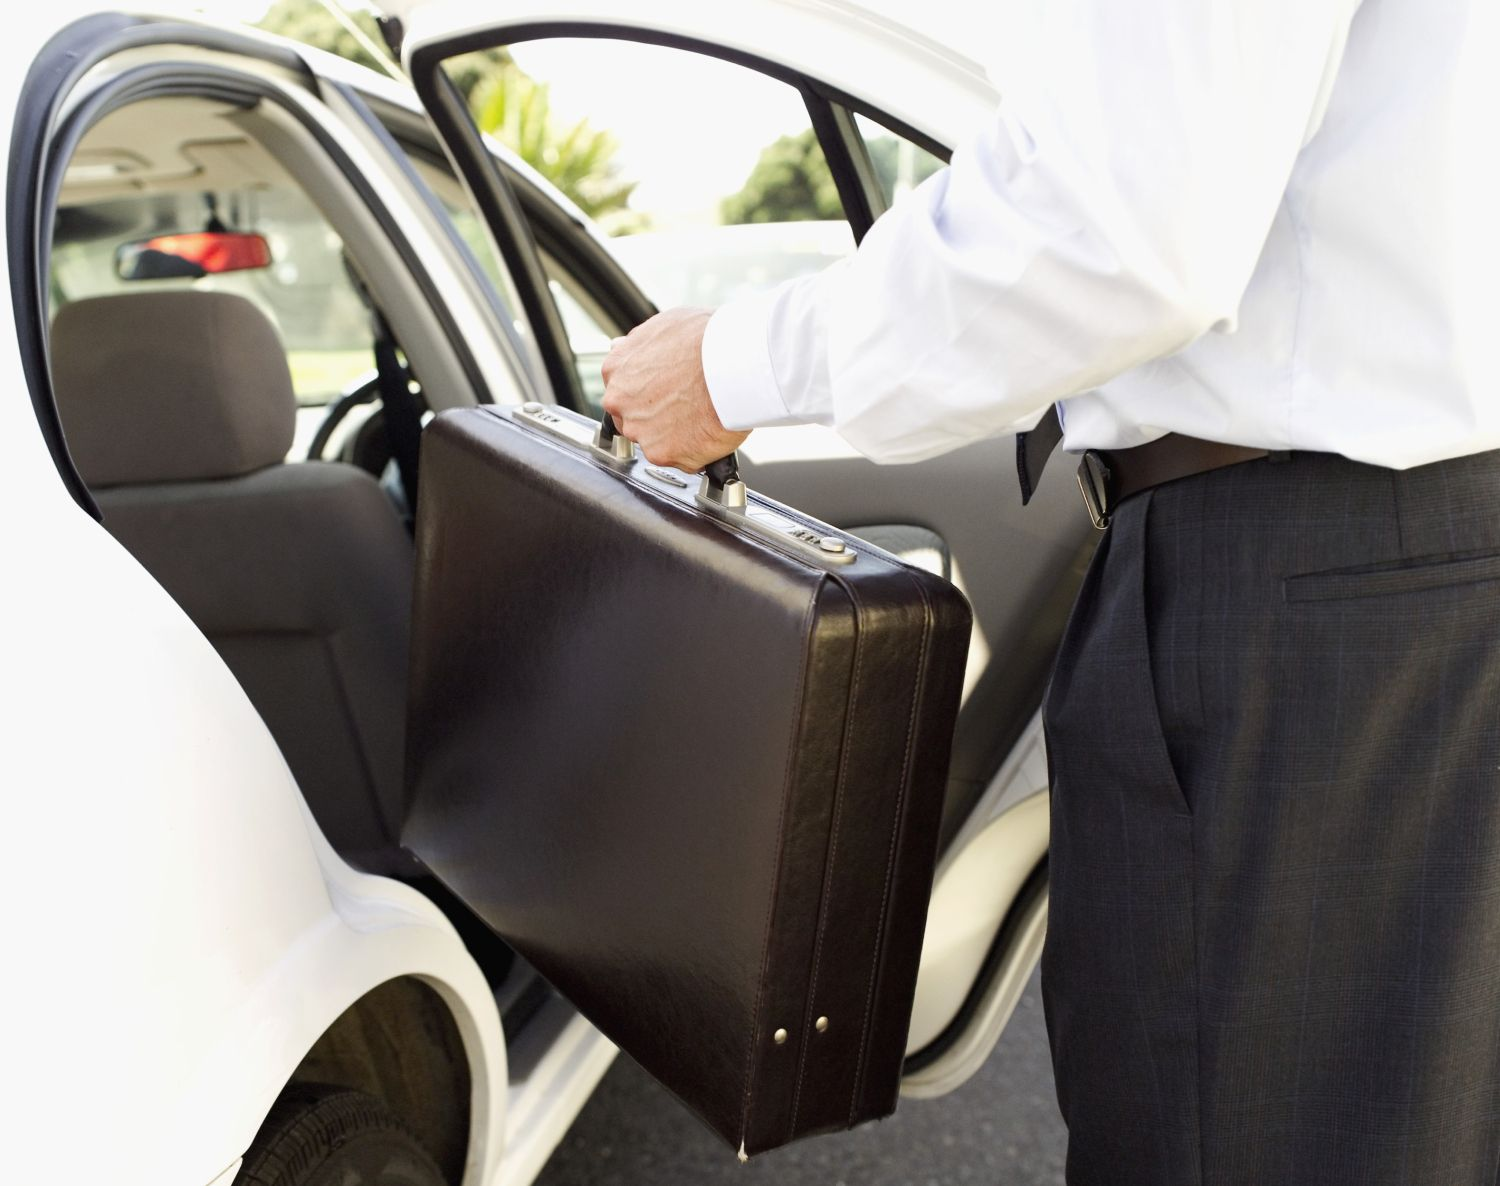 Man putting a briefcase into the backseat of a car.